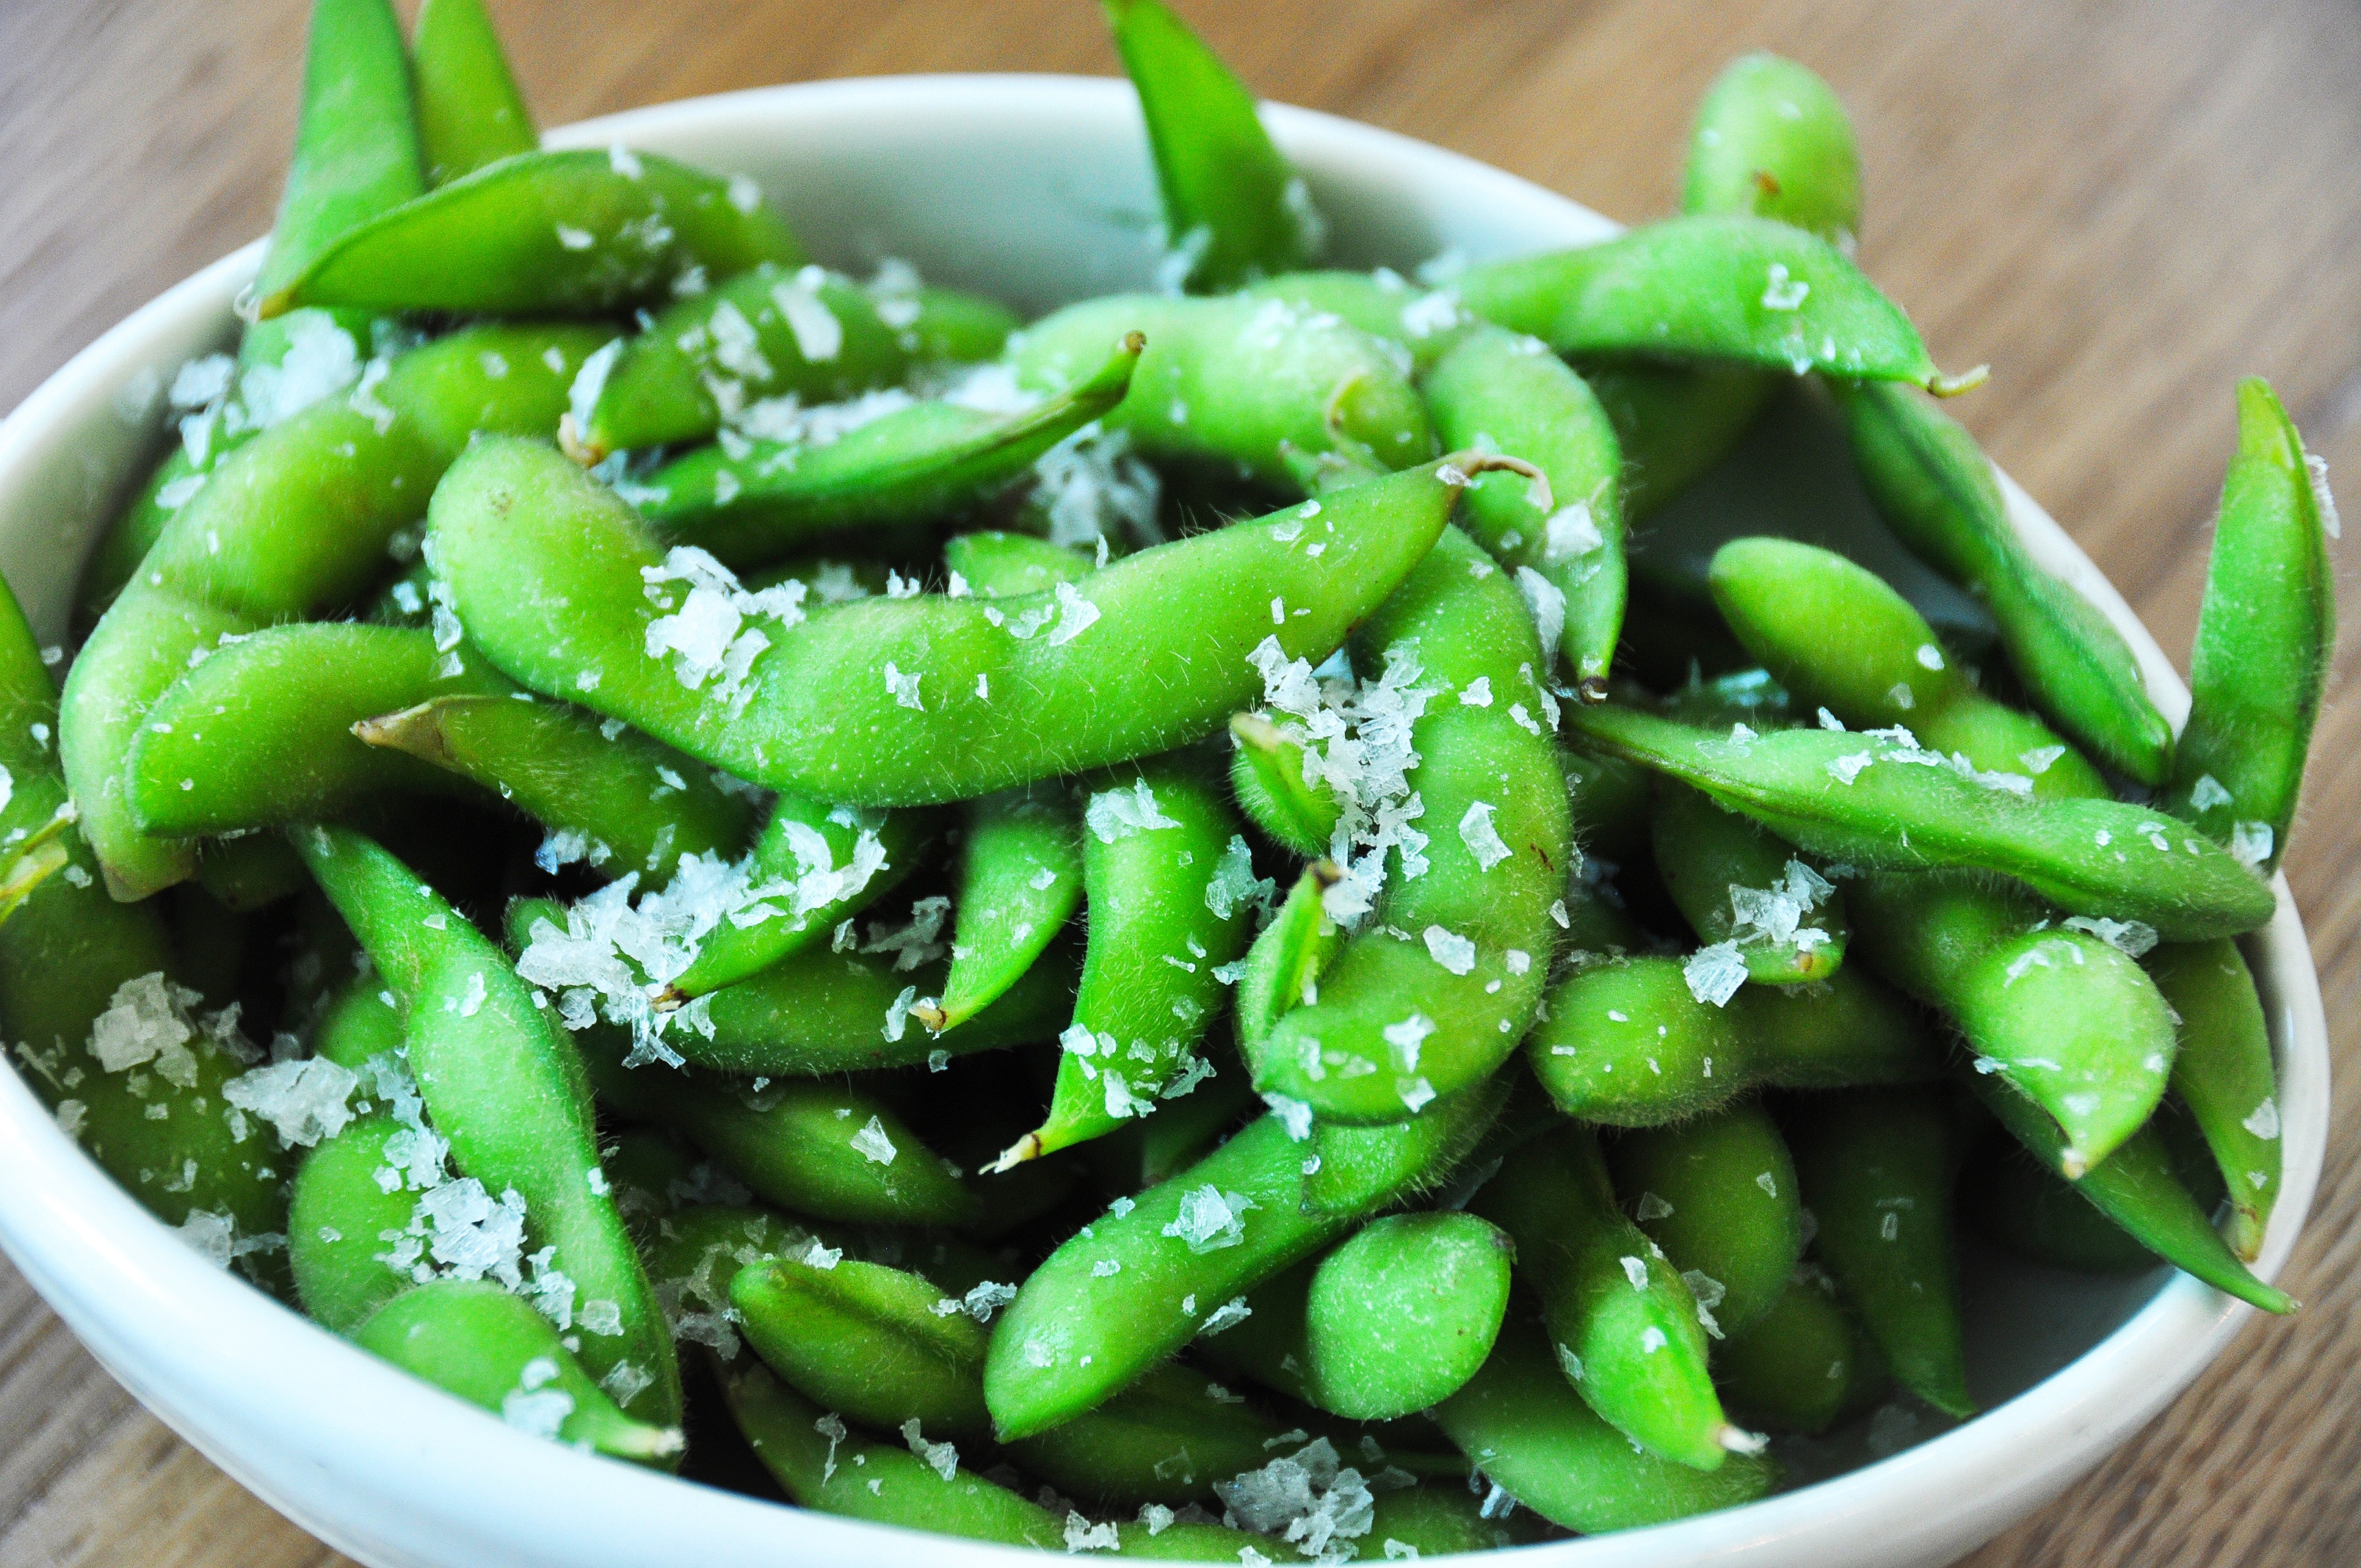 Edamame are green soybeans the pods are boiled or steamed and served